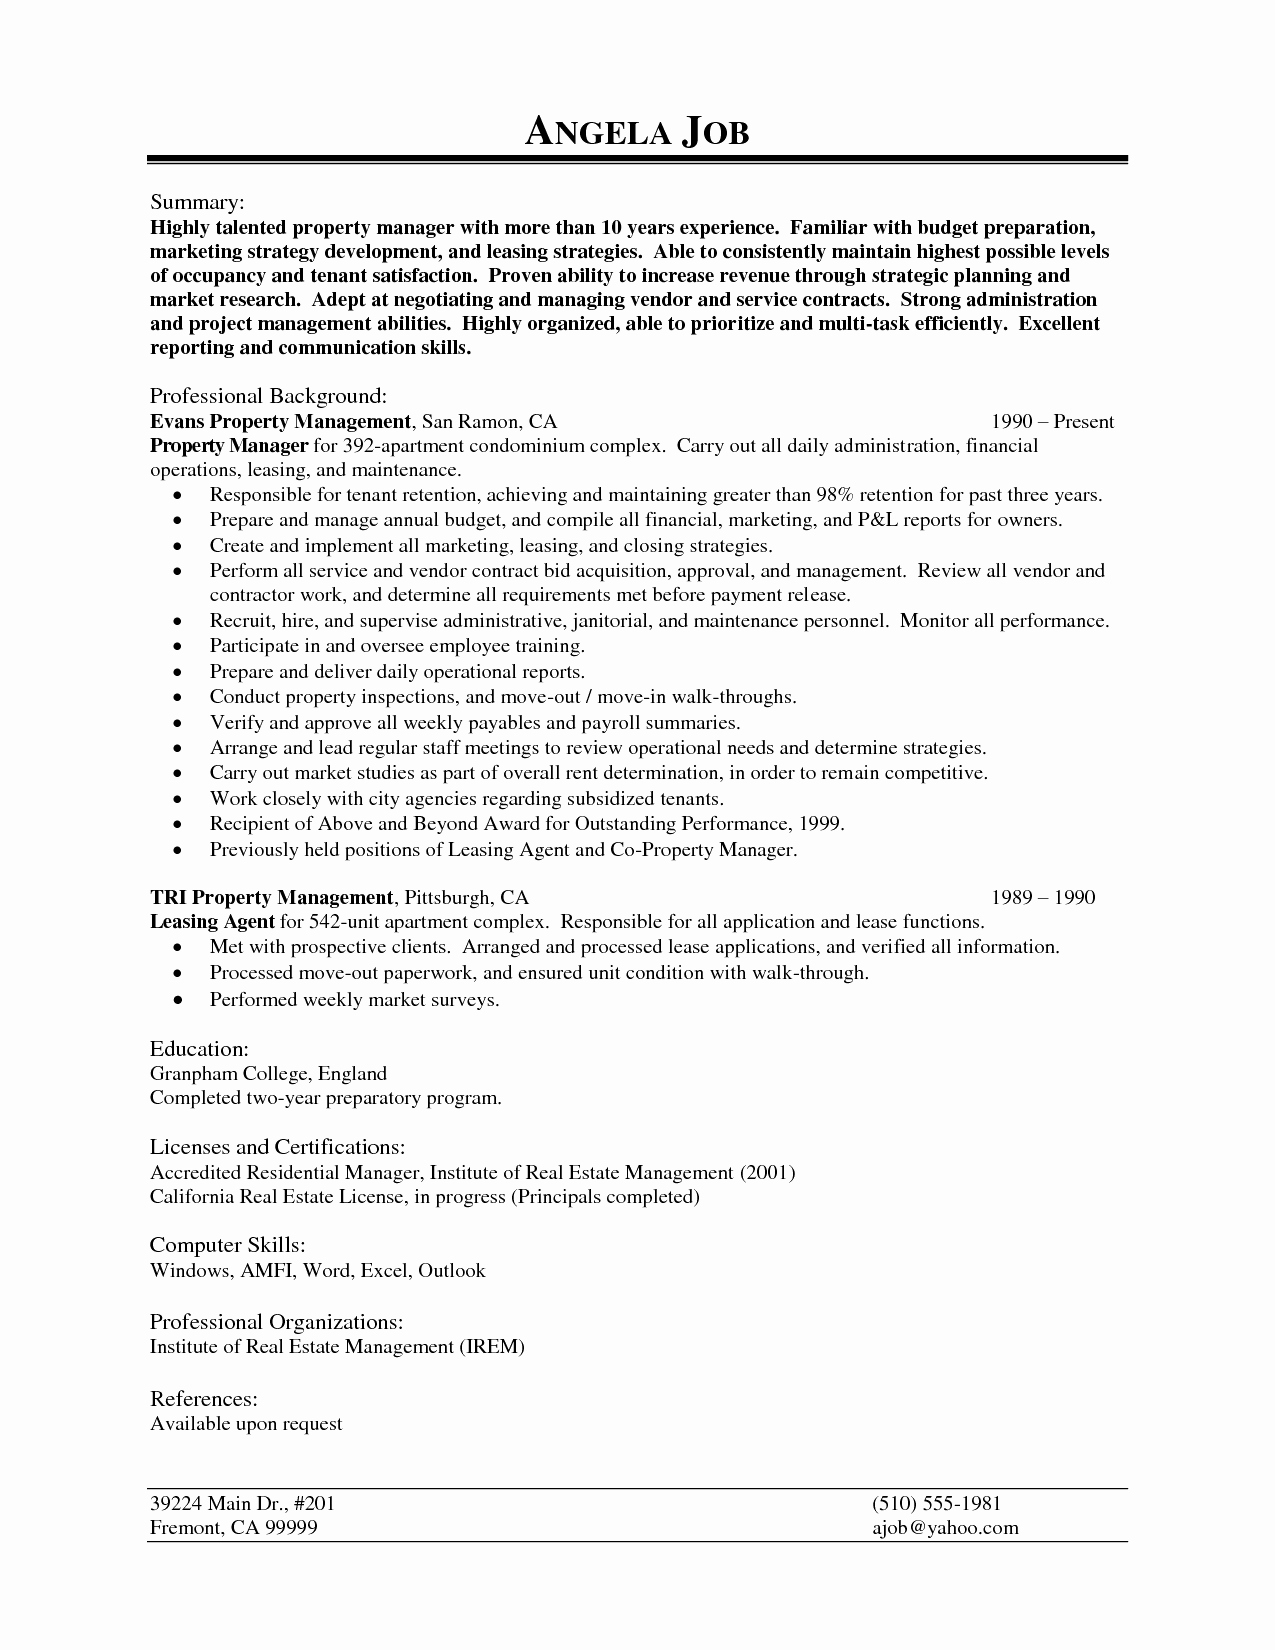 Residential Property Manager Resume Sample - Residential Property Manager Resume Sample 46 Beautiful Property